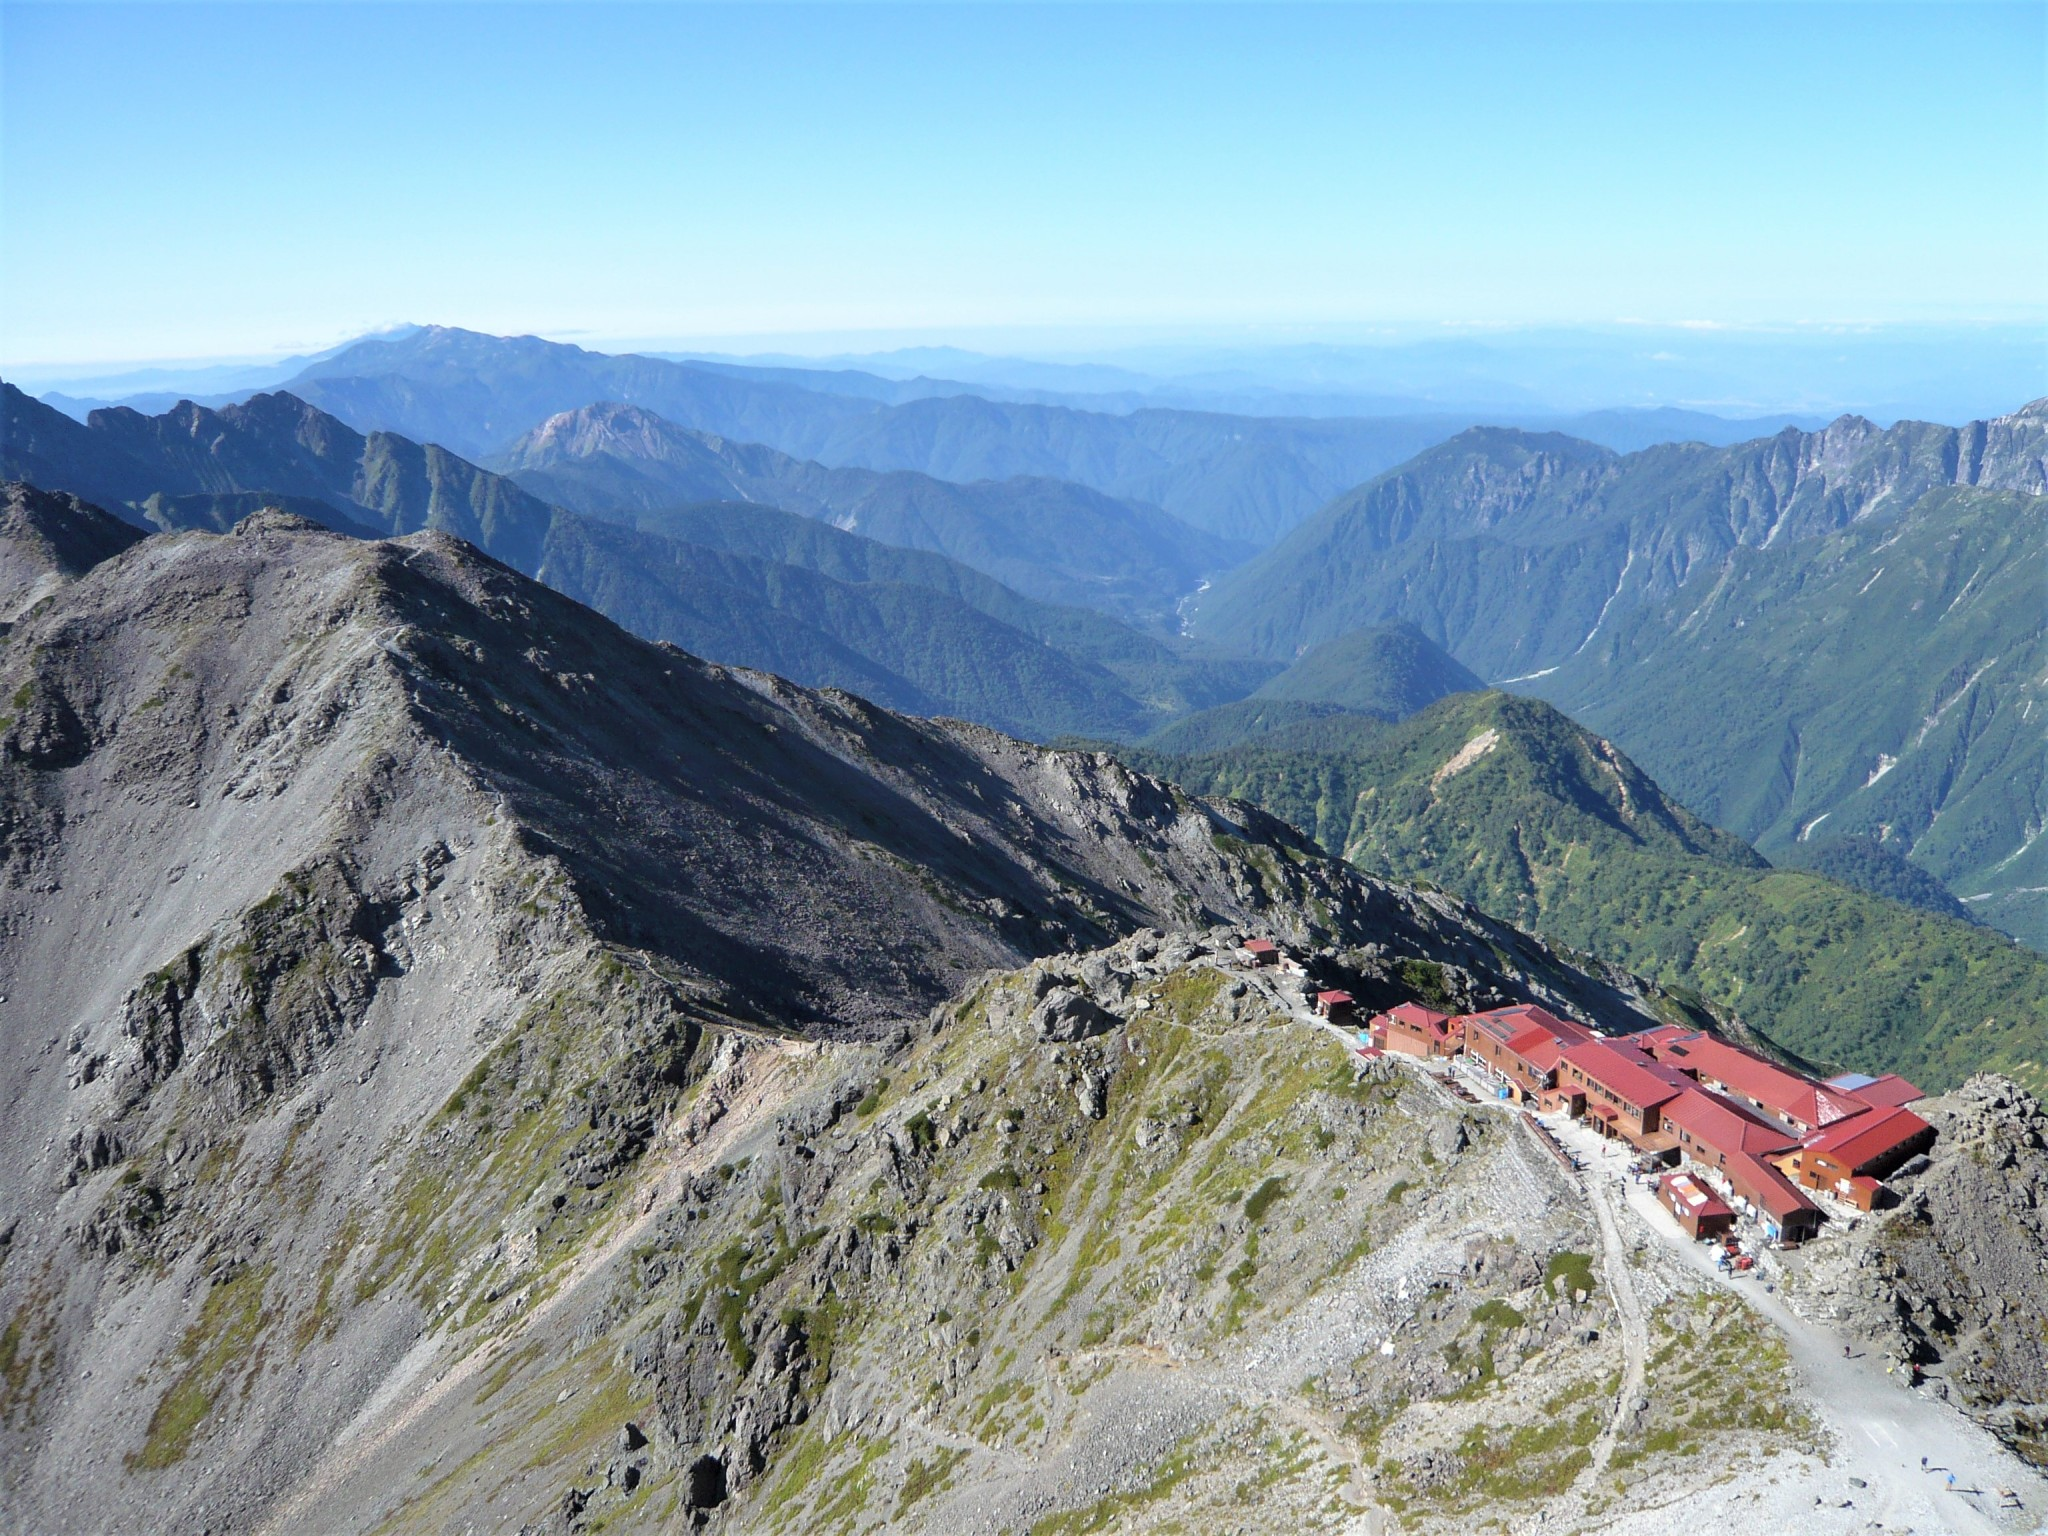 A small collection of buildings perched precariously on a dramatic mountain ridgeline with other peaks visible in the distance.